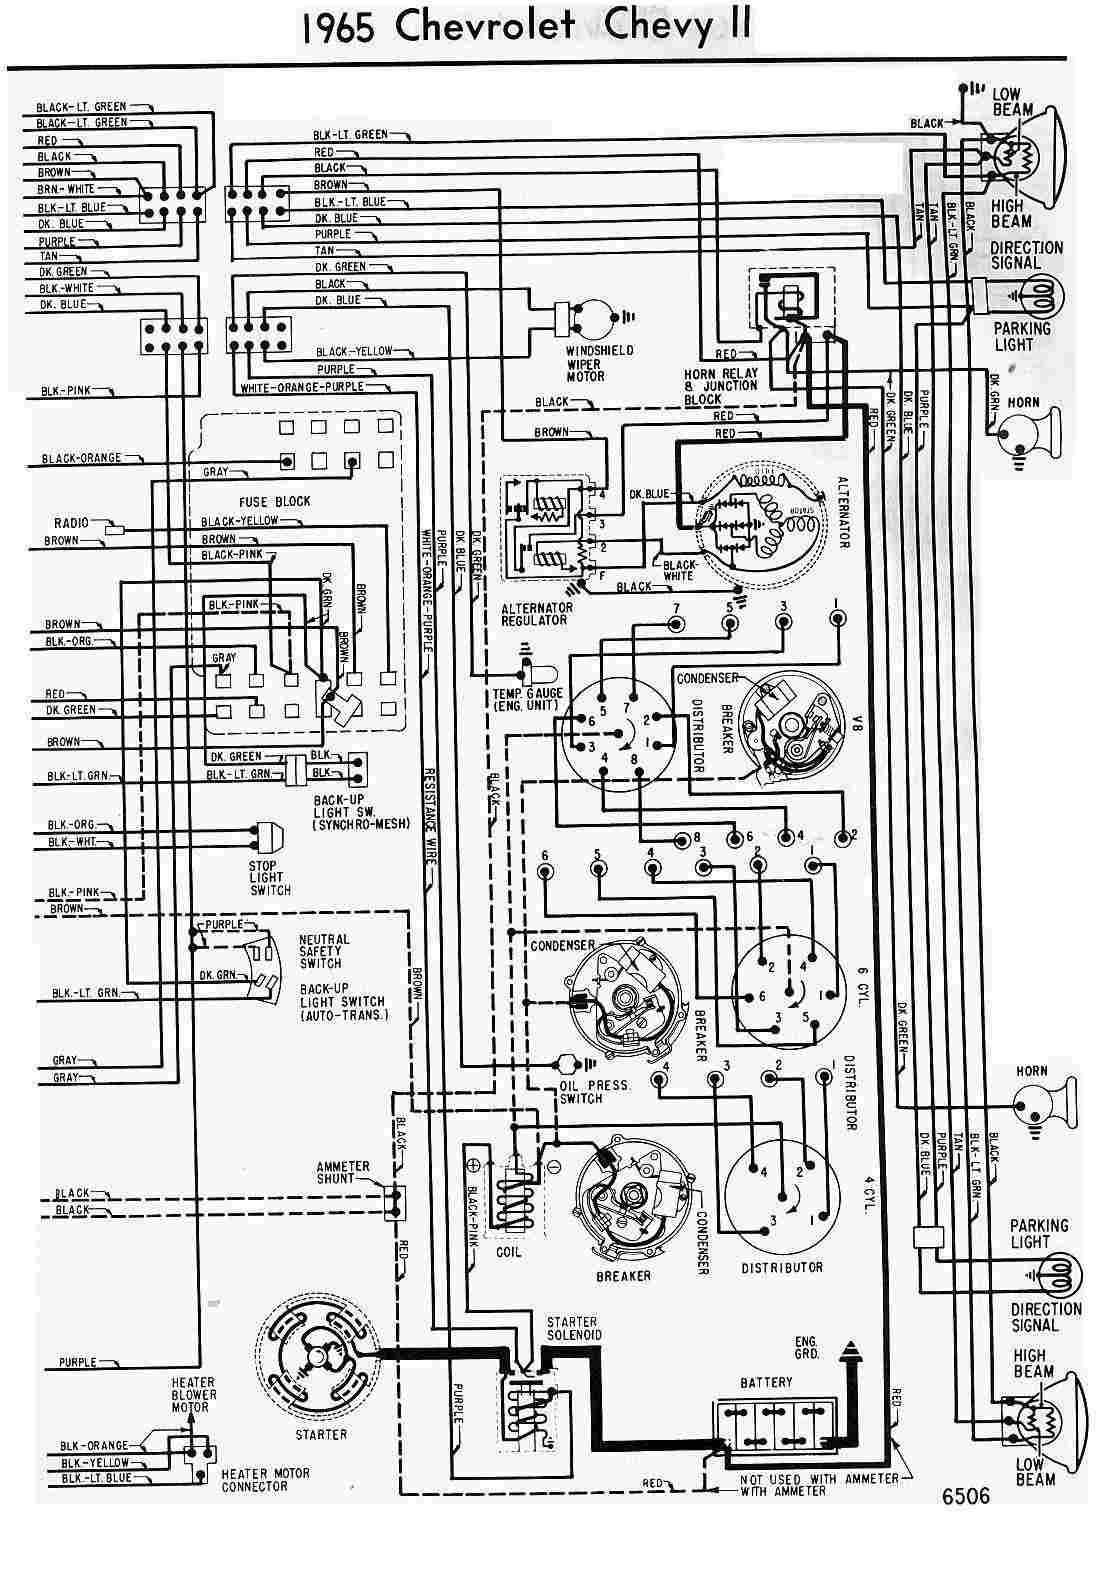 hight resolution of 1959 chevrolet wiring diagram impala convertiblejpeg wiring diagrams 2007 chevy impala ignition wiring diagram 1967 chevy impala wiring harness diagram